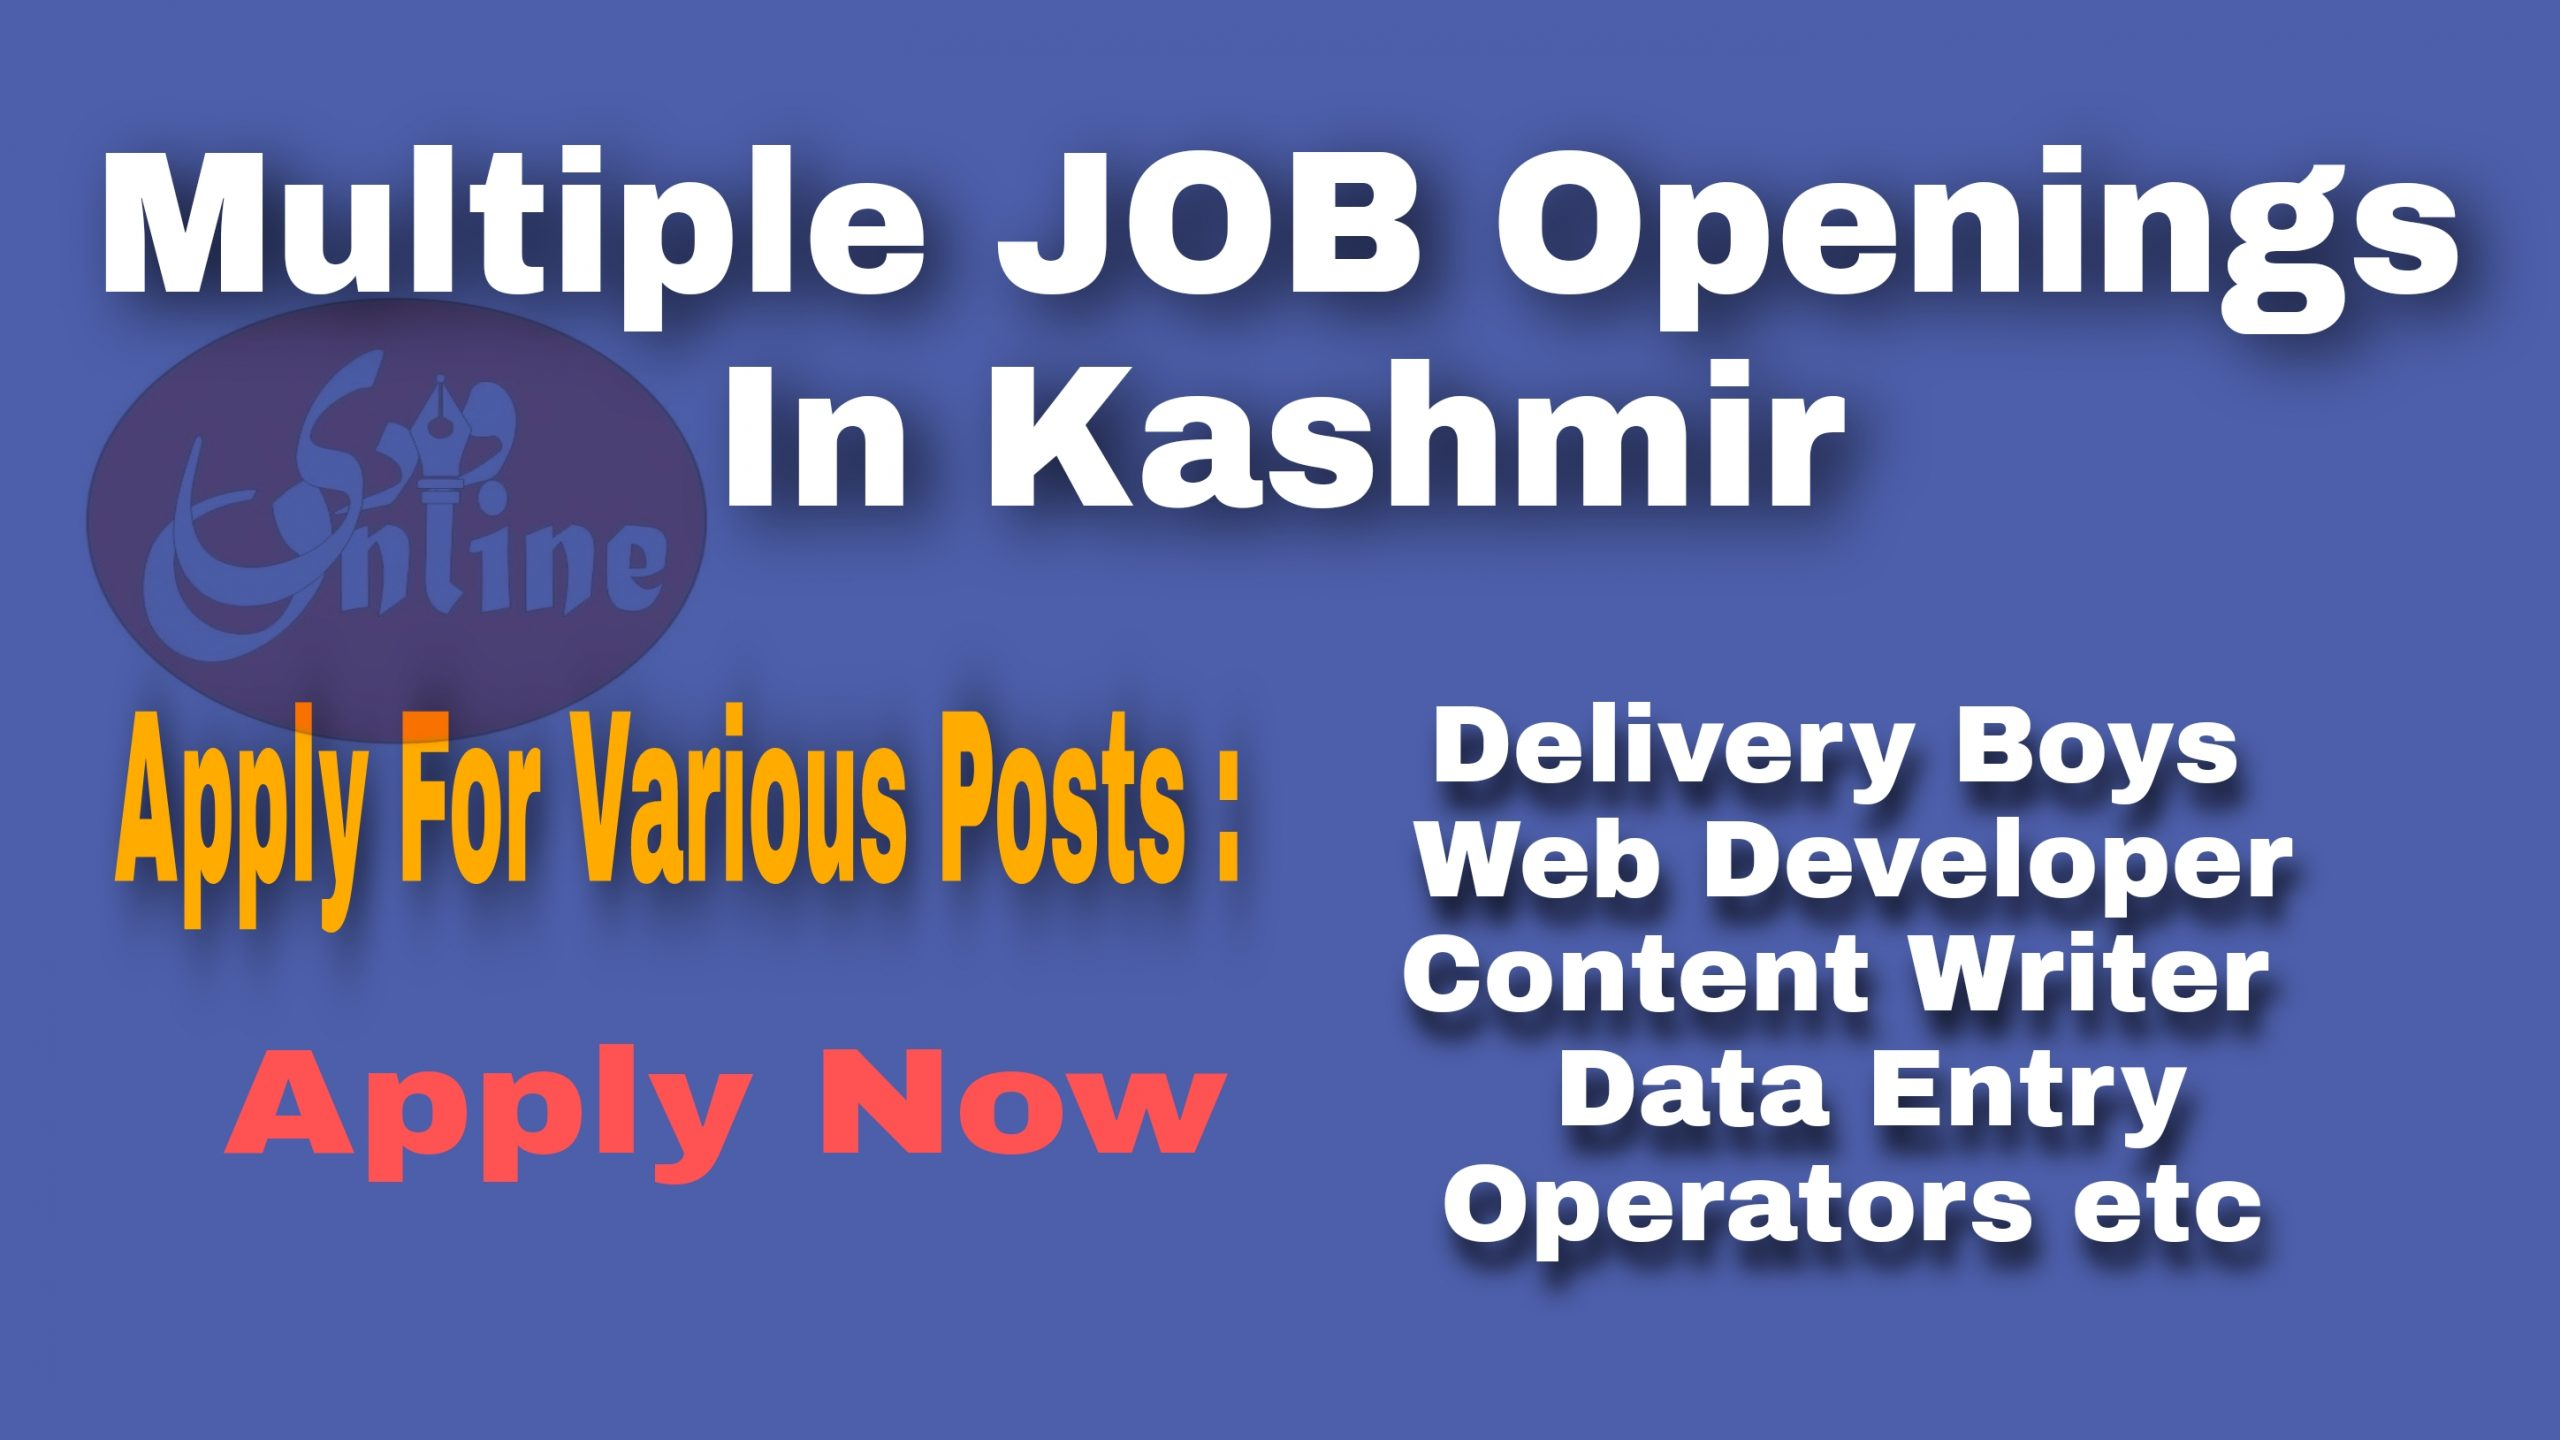 fresh private company jobs in kashmir Latest 2021 data entry jobs